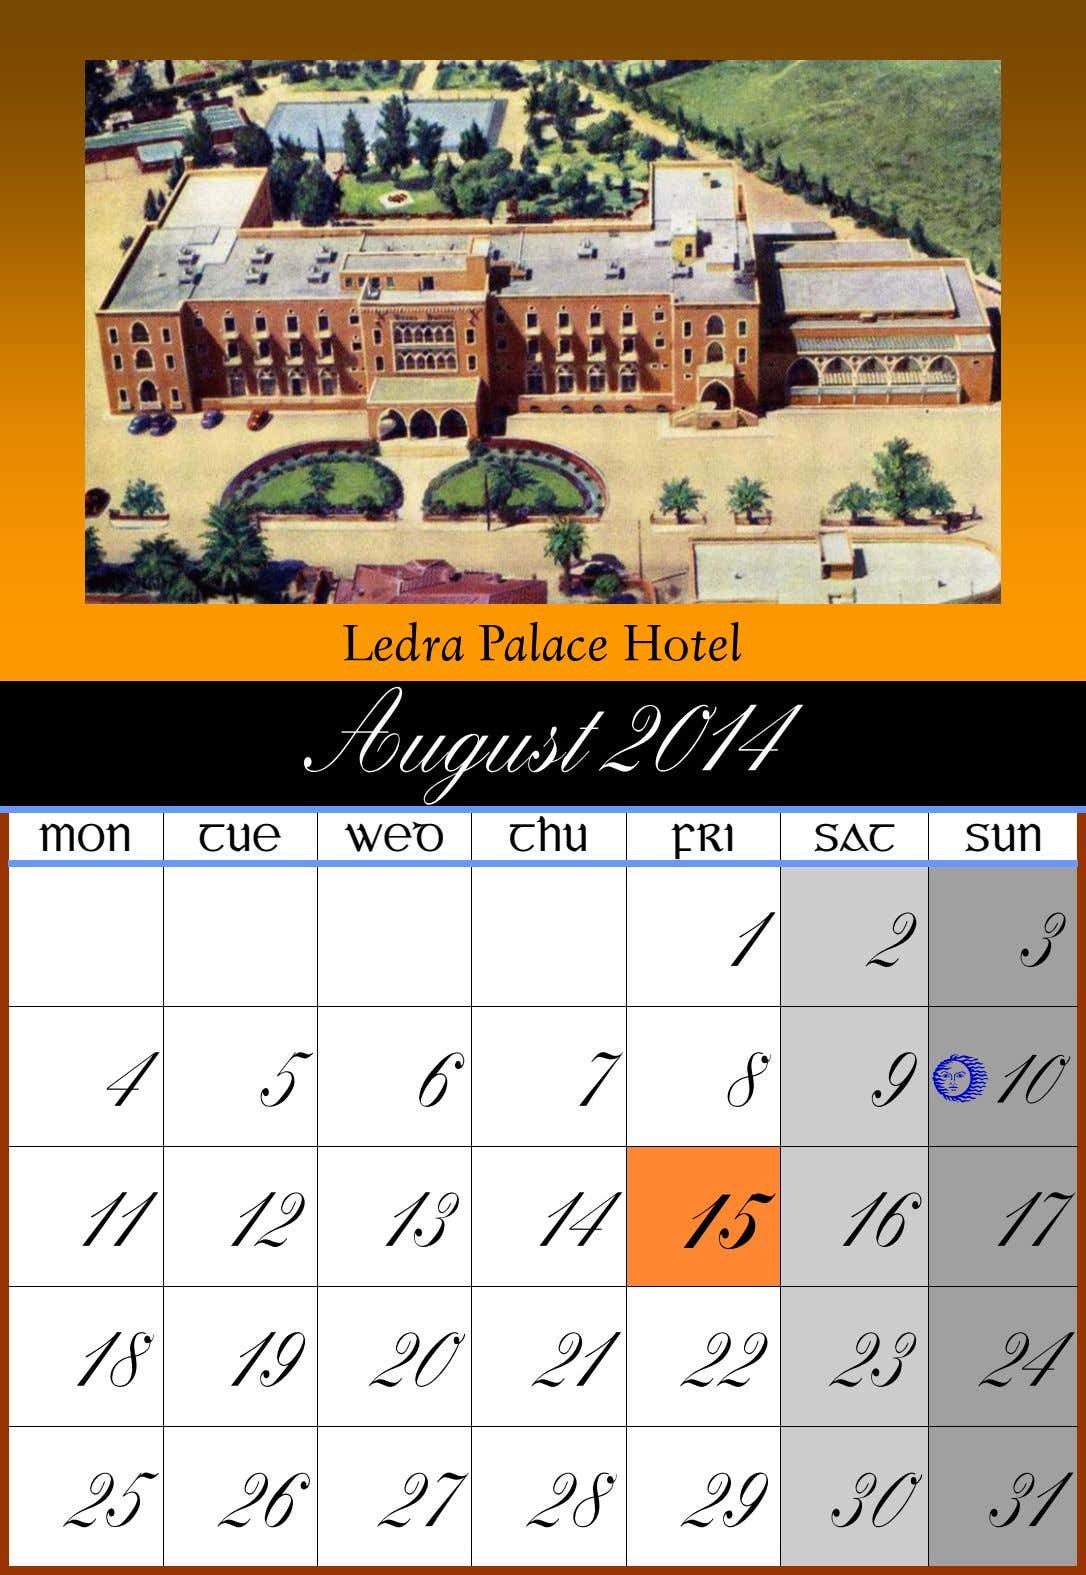 Ledra Palace Hotel August 2014 MON TUE WED THU FRI SAT SUN 1 2 3